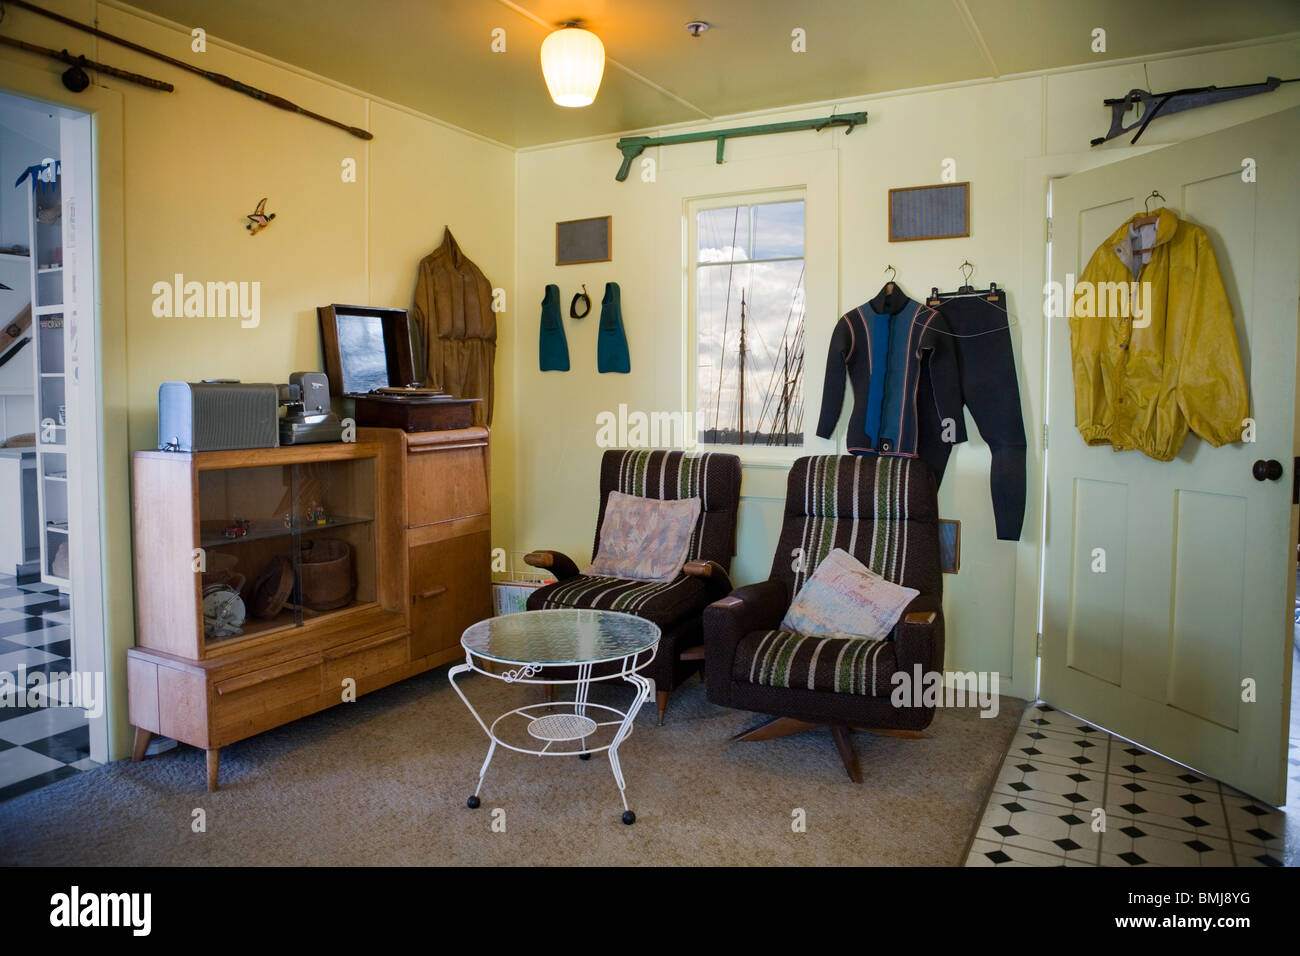 Furniture And Scuba Gear In A Beach House From The Fifties 50s